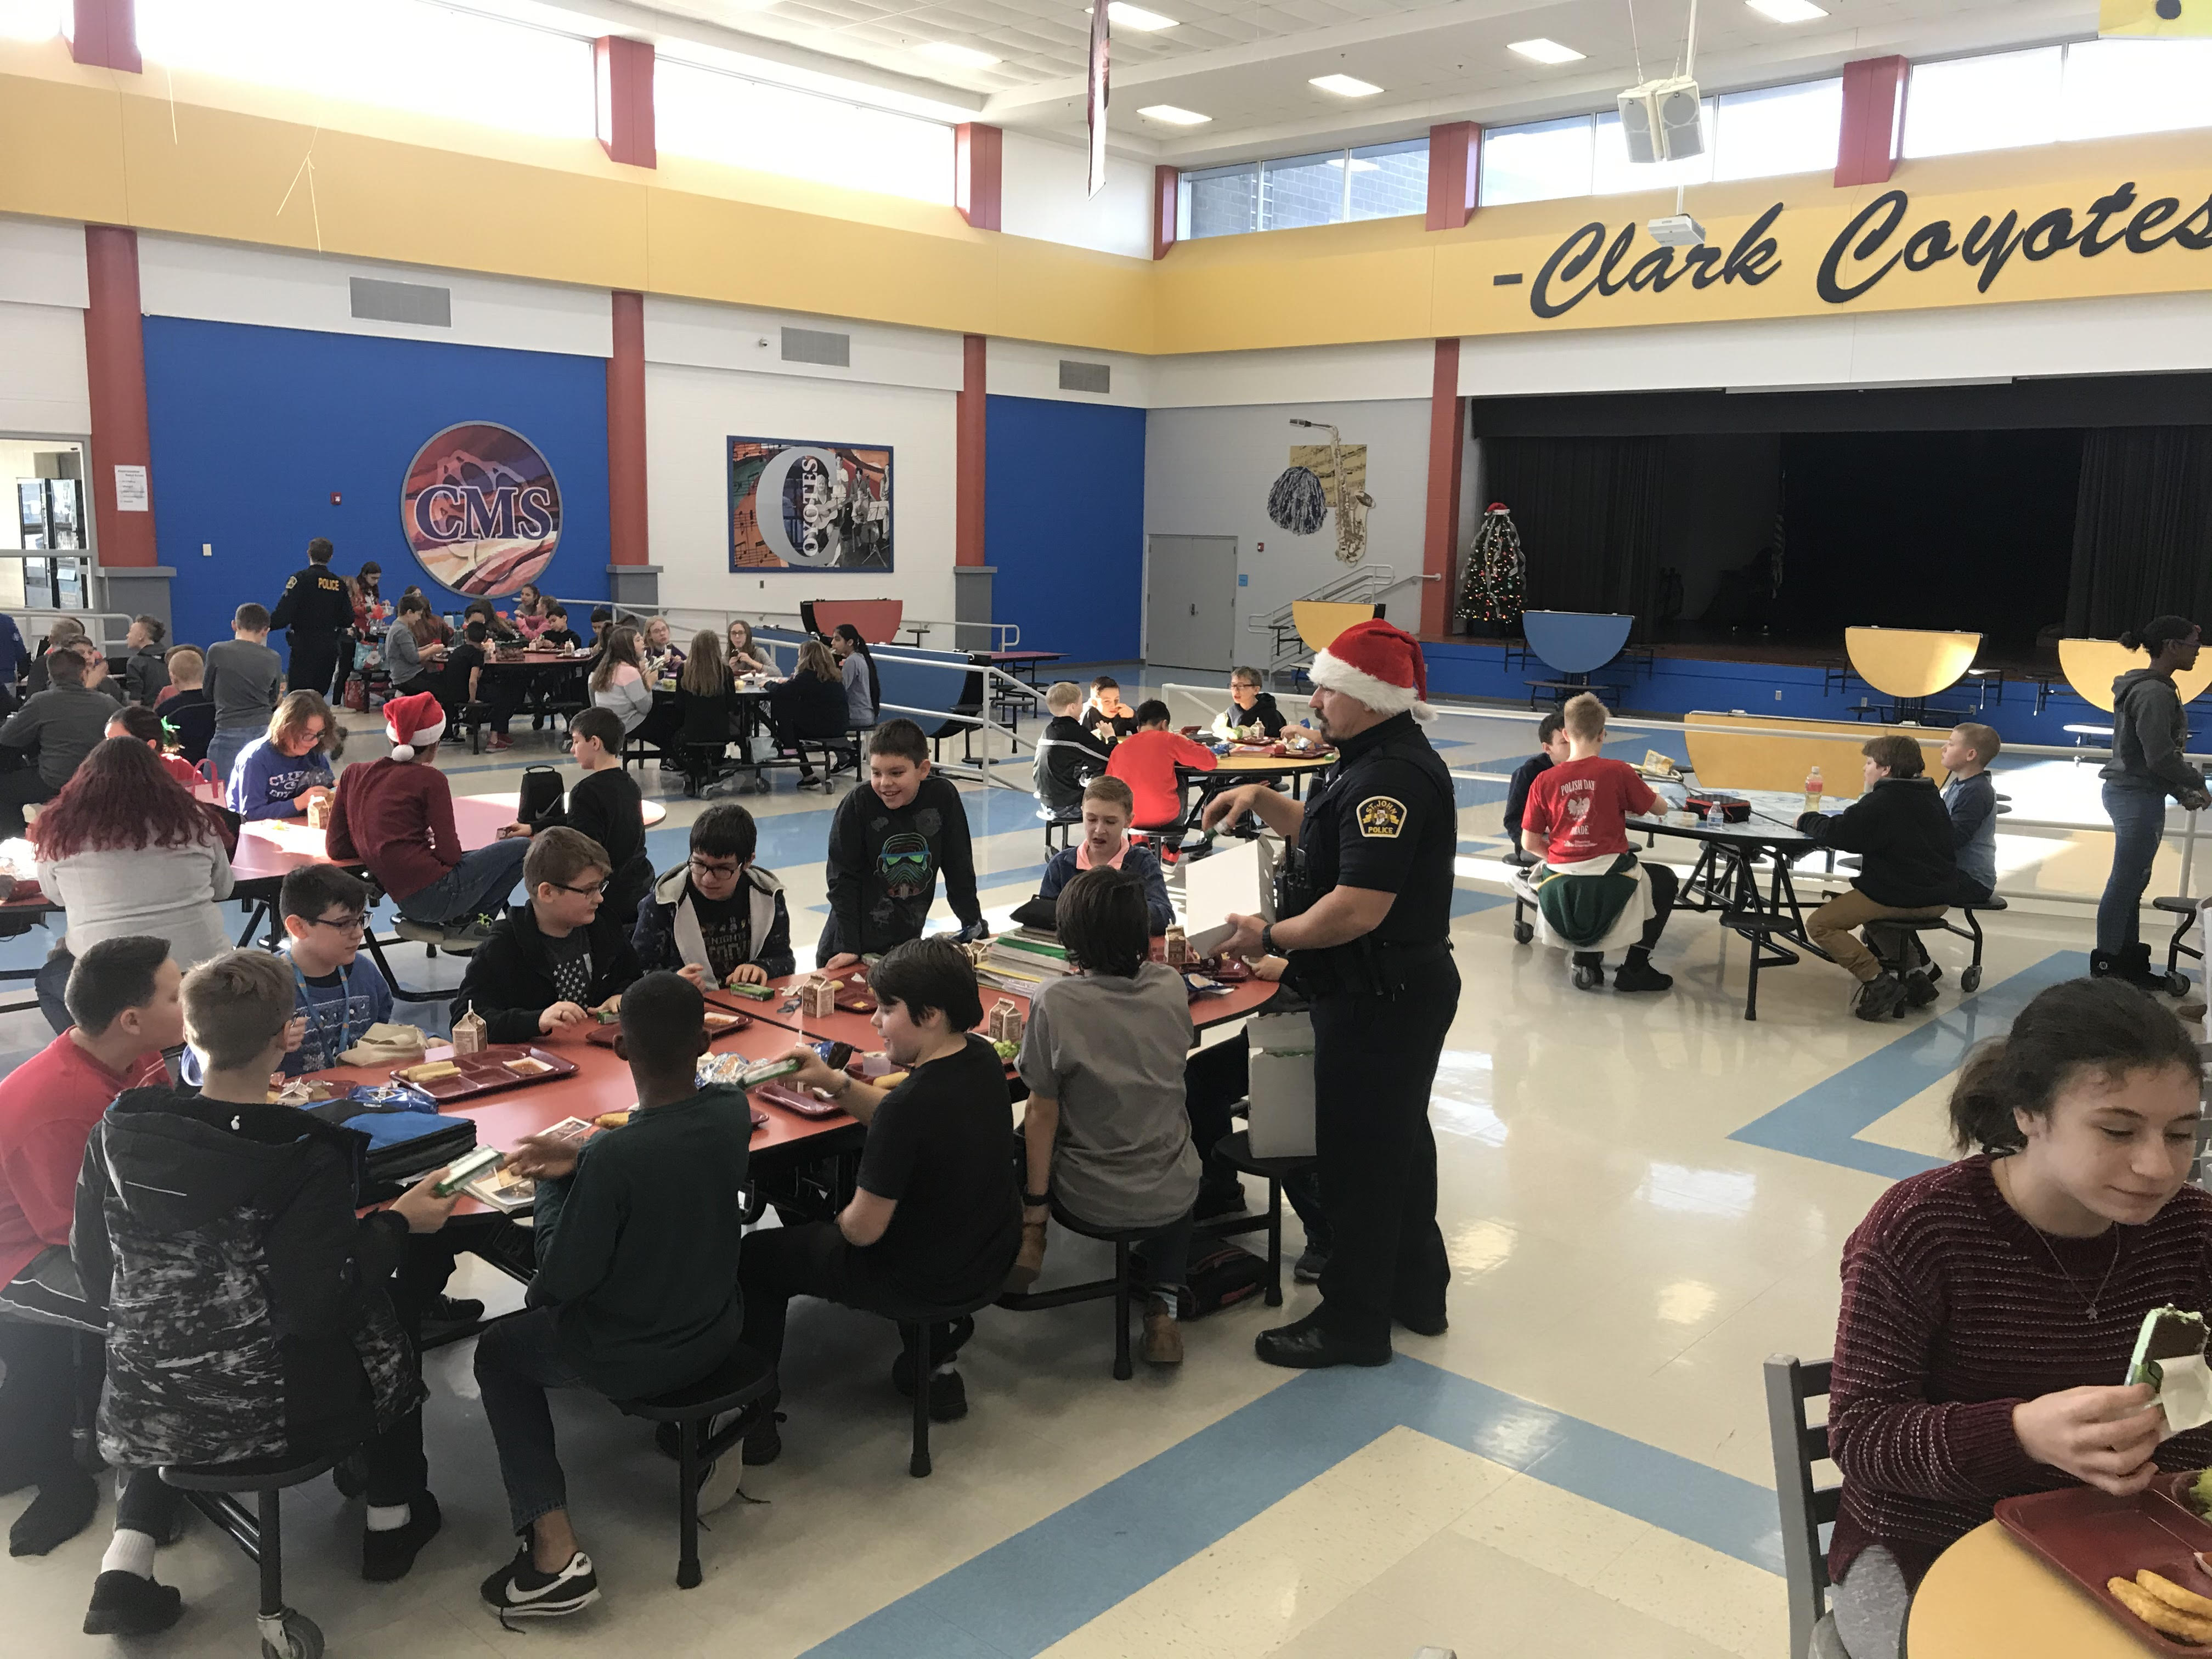 SRO Nick Stamate passing out ice cream to students during lunch. Happy holidays!